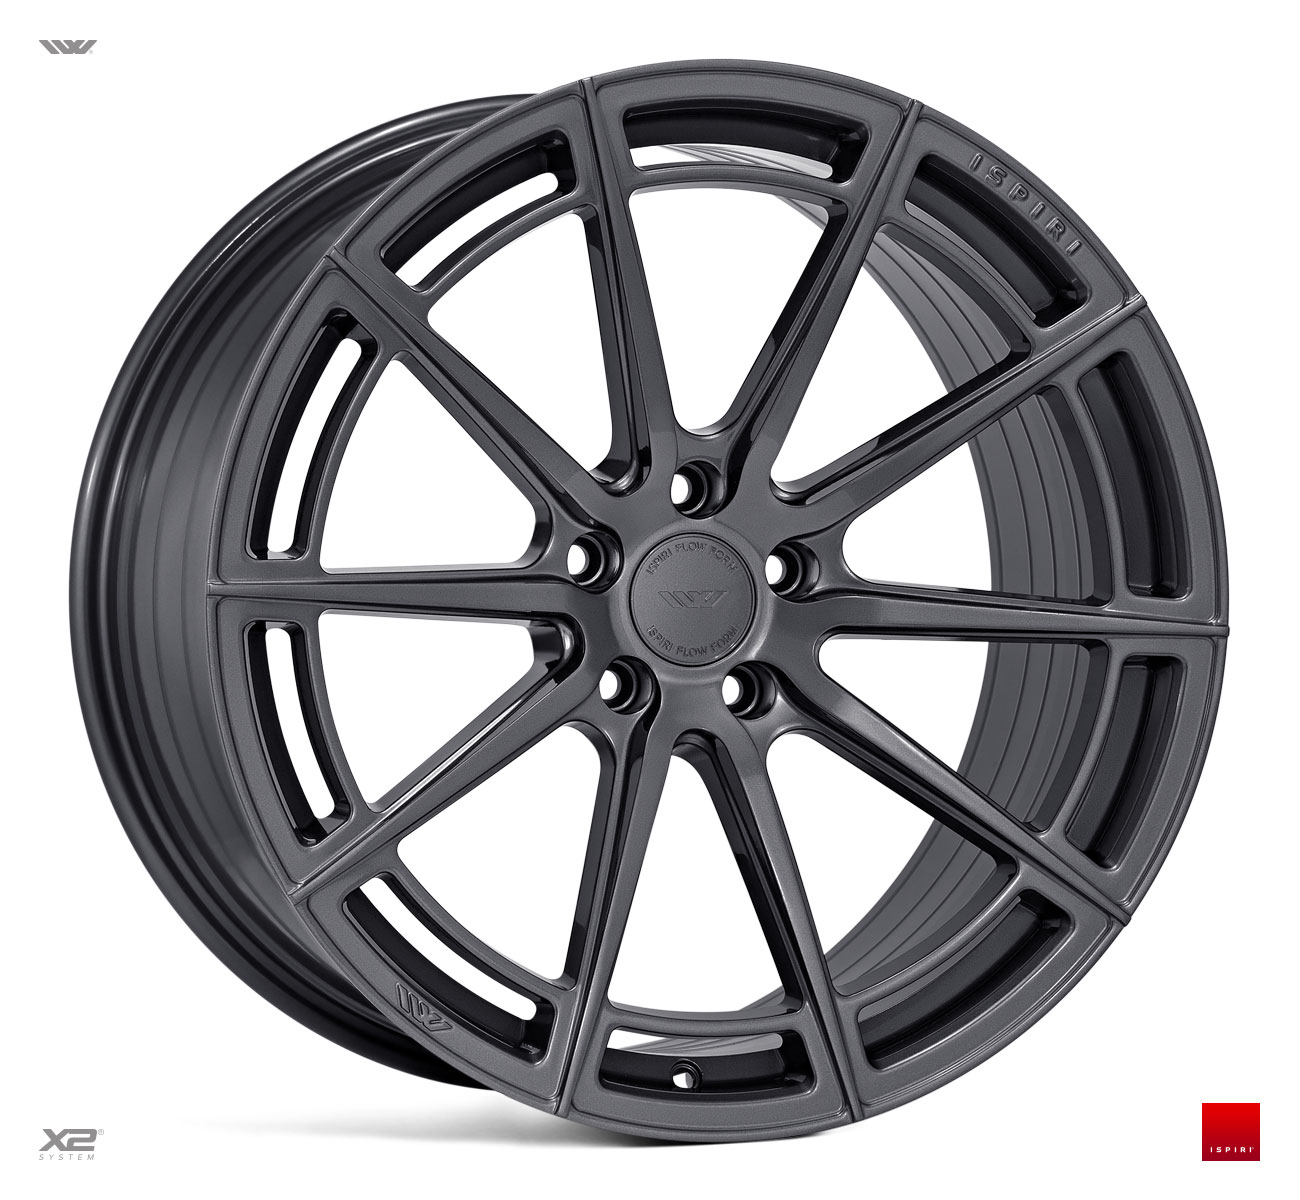 "NEW 20"" ISPIRI FFR2 MULTI-SPOKE ALLOY WHEELS IN CARBON GRAPHITE, WIDER 10"" REAR"